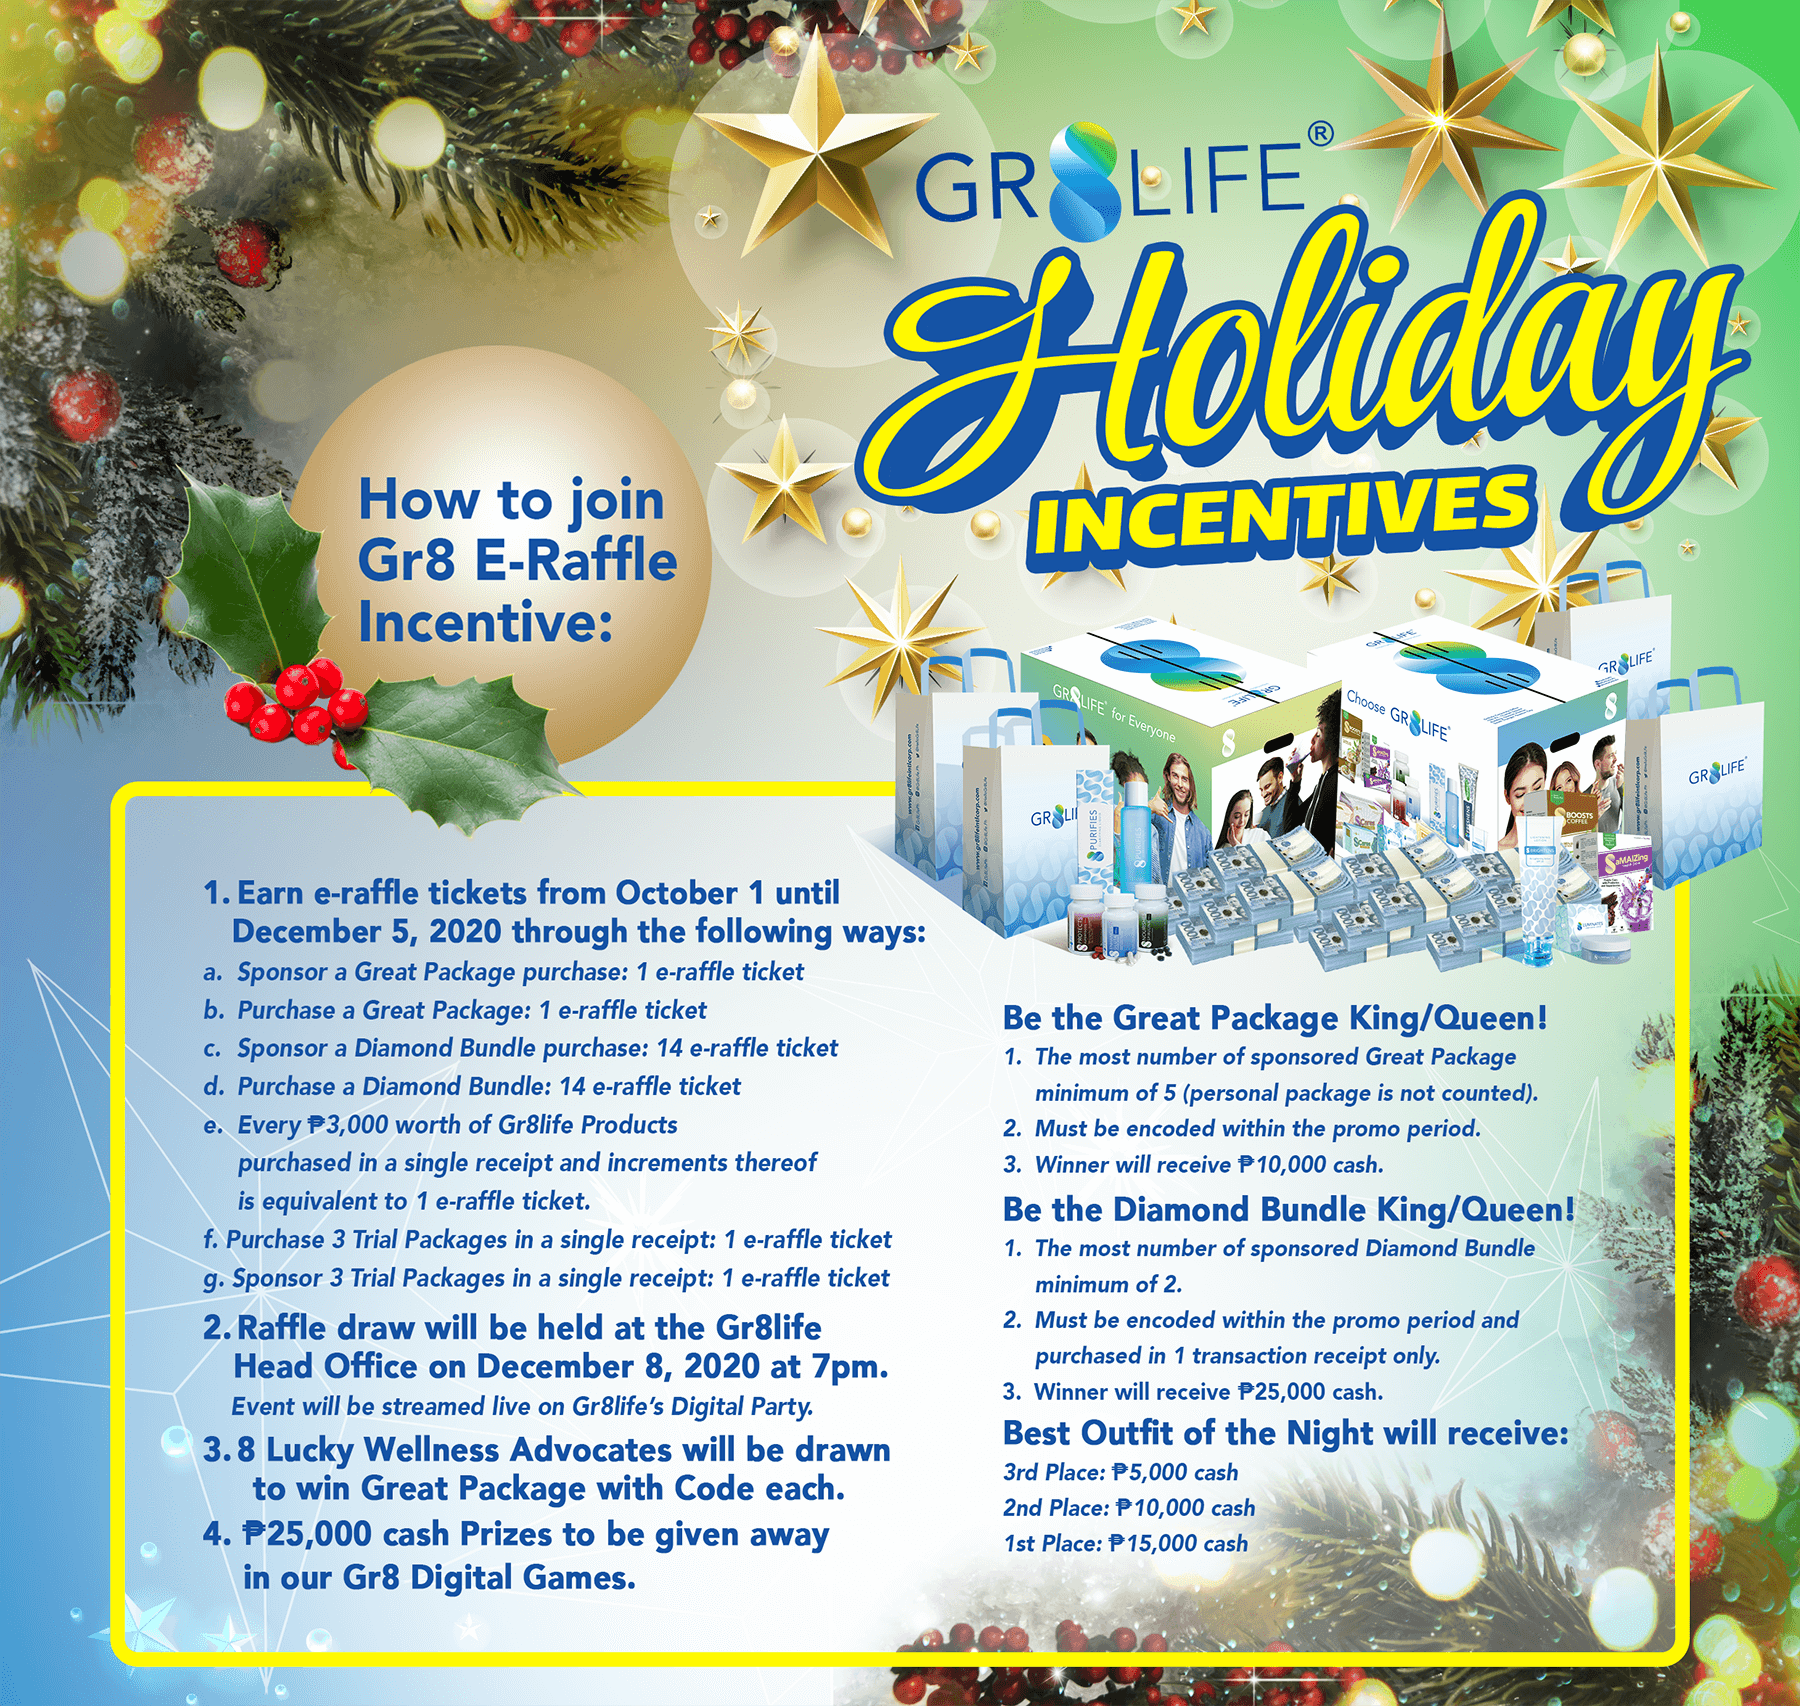 Gr8life Holiday Incentives